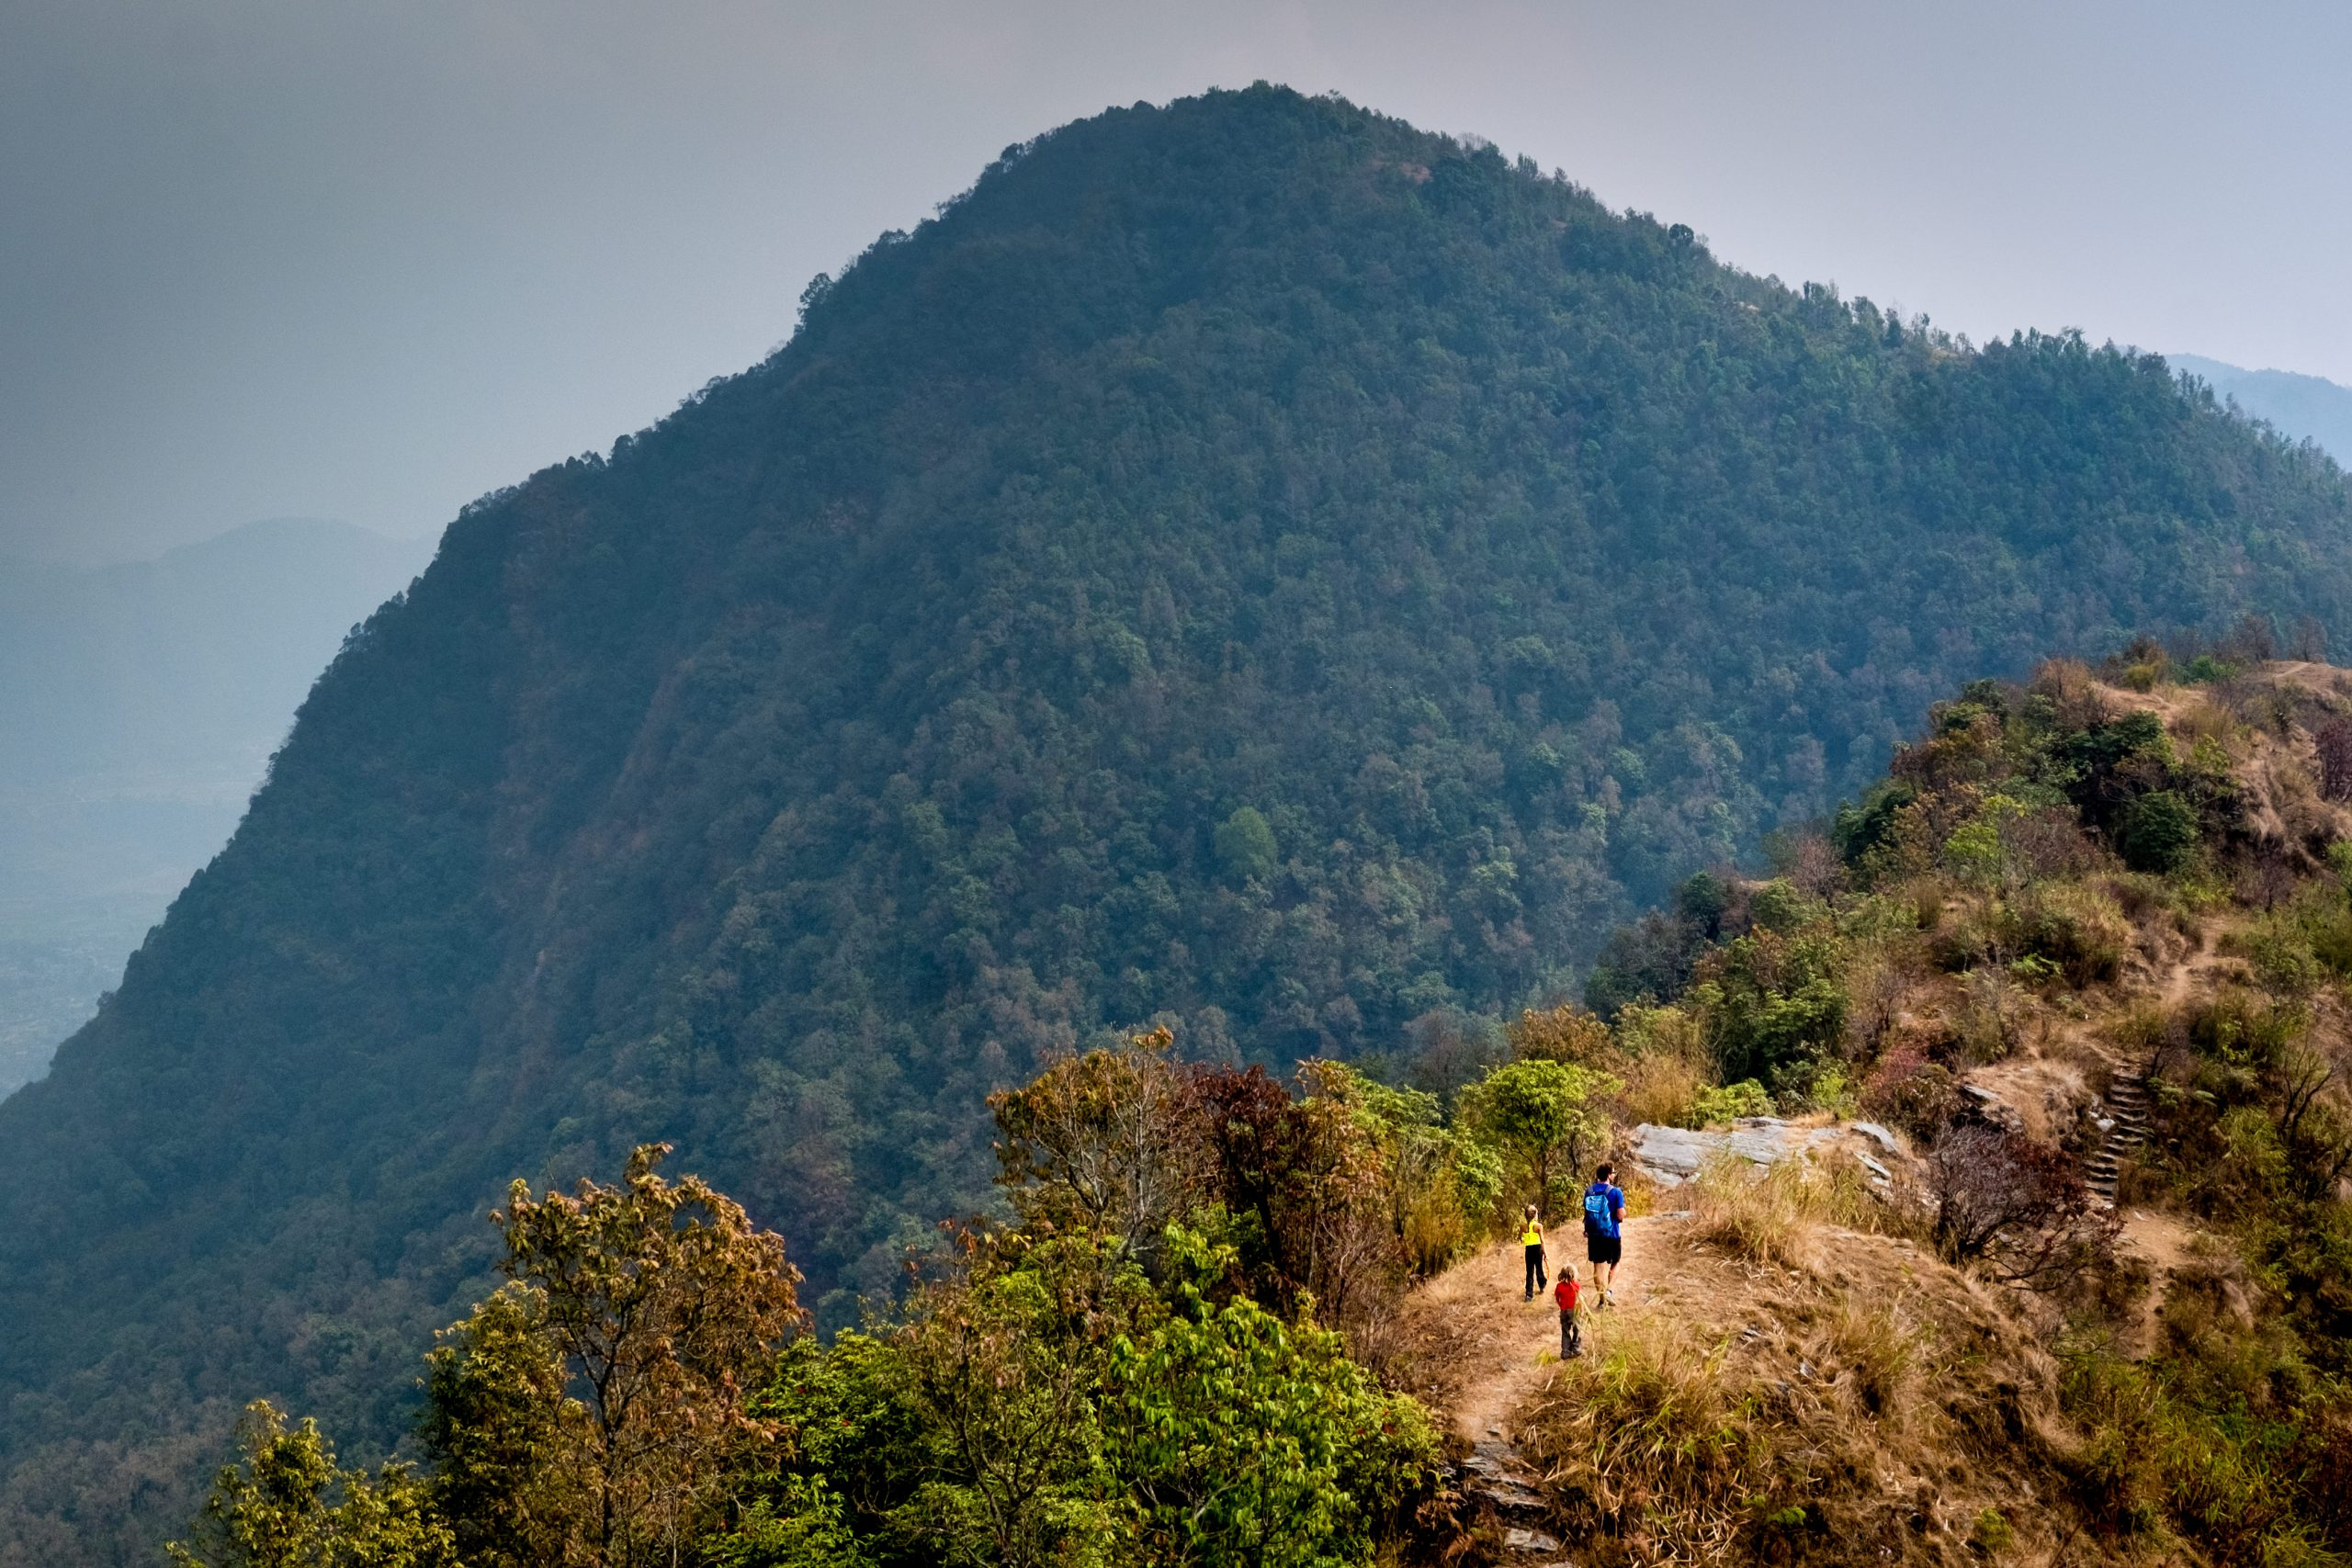 Father and kids hiking up hill in Nepal